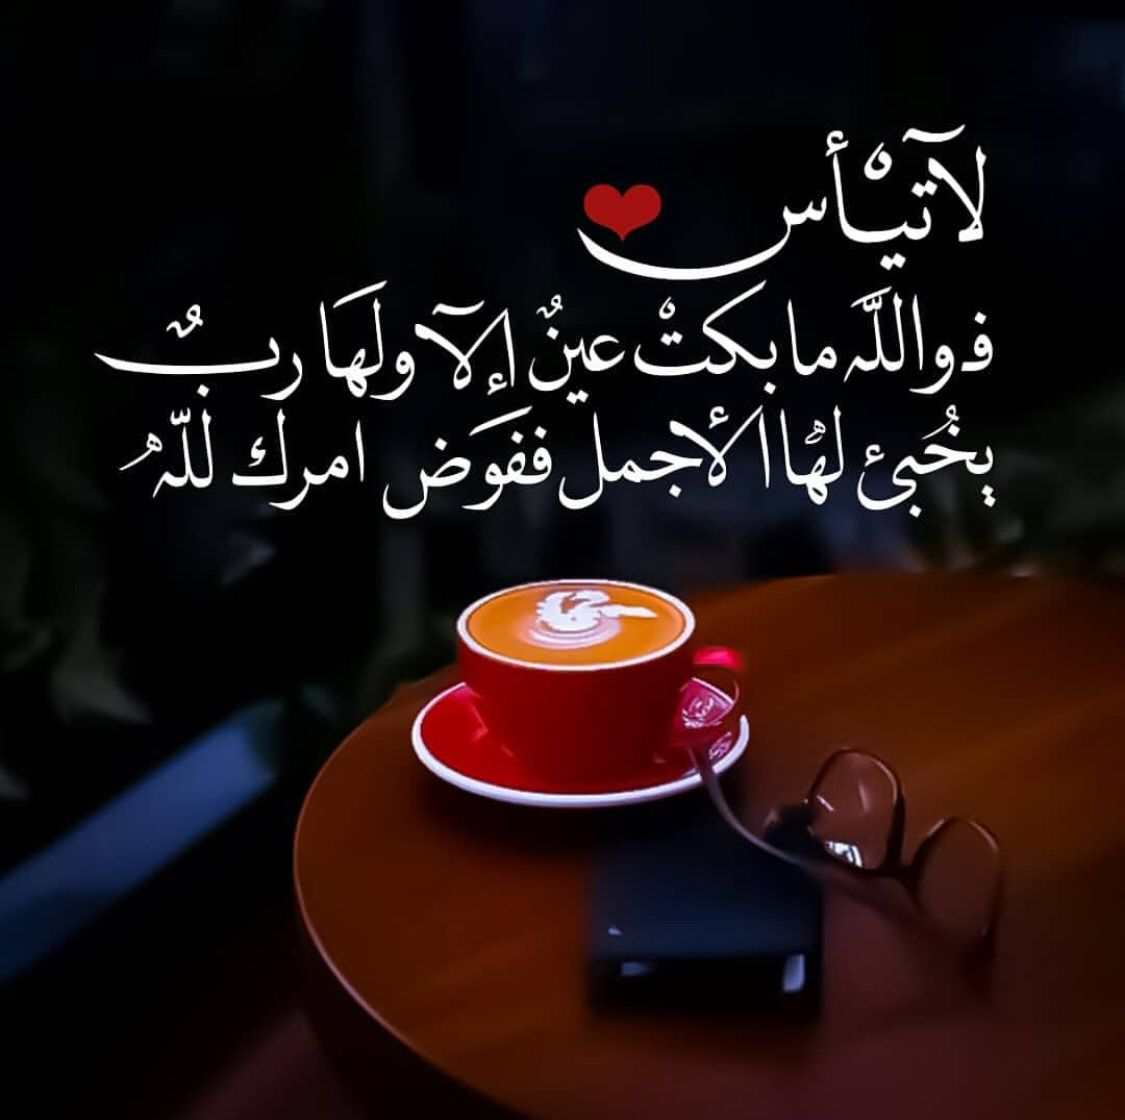 Pin By K As On مواعظ خواطر إسلامية Short Quotes Love Arabic Quotes Arabic Love Quotes